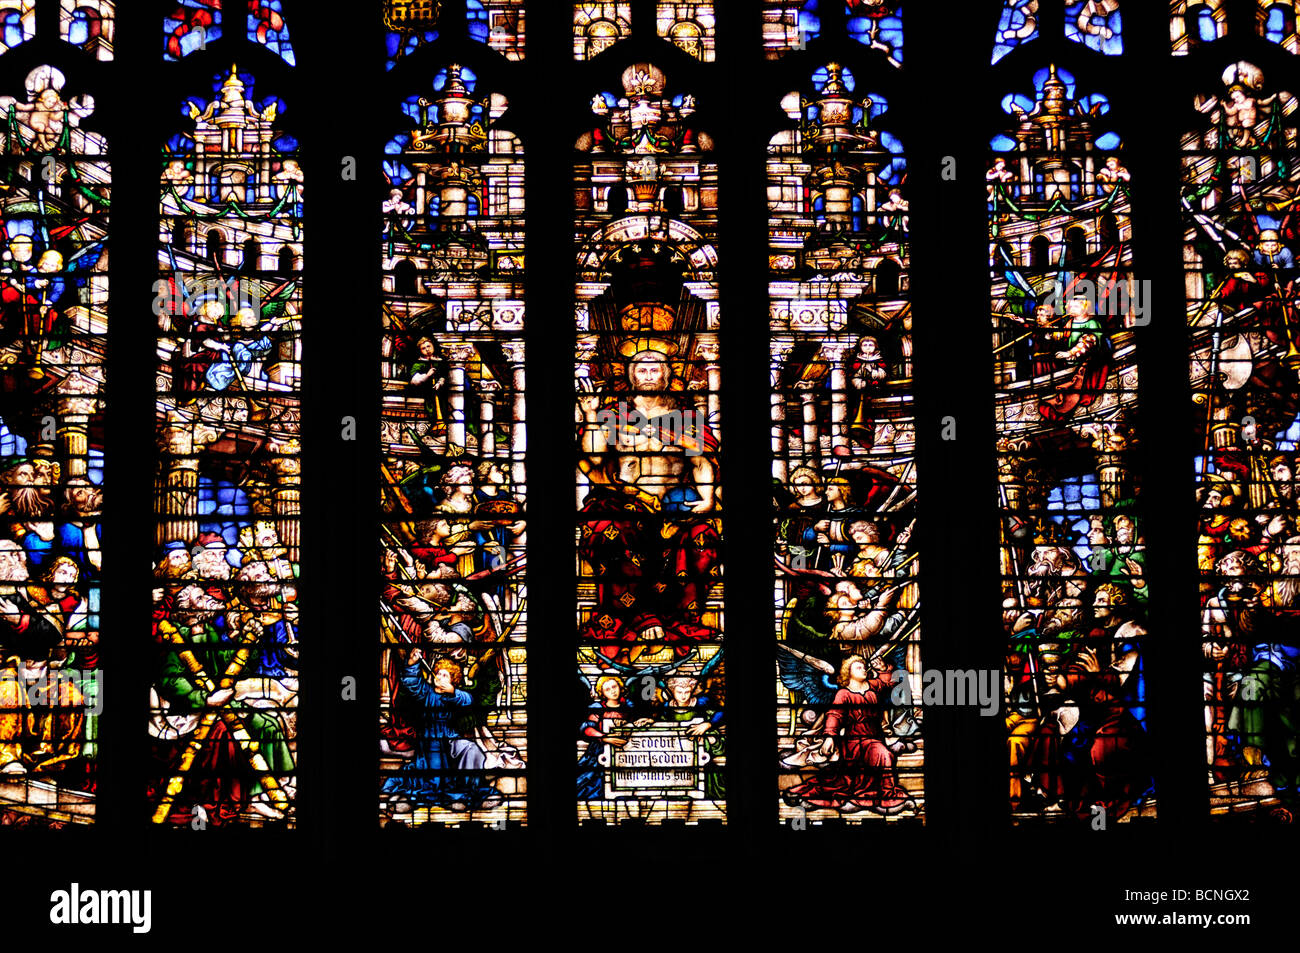 Detail Of The West Stained Glass Window In Kings College